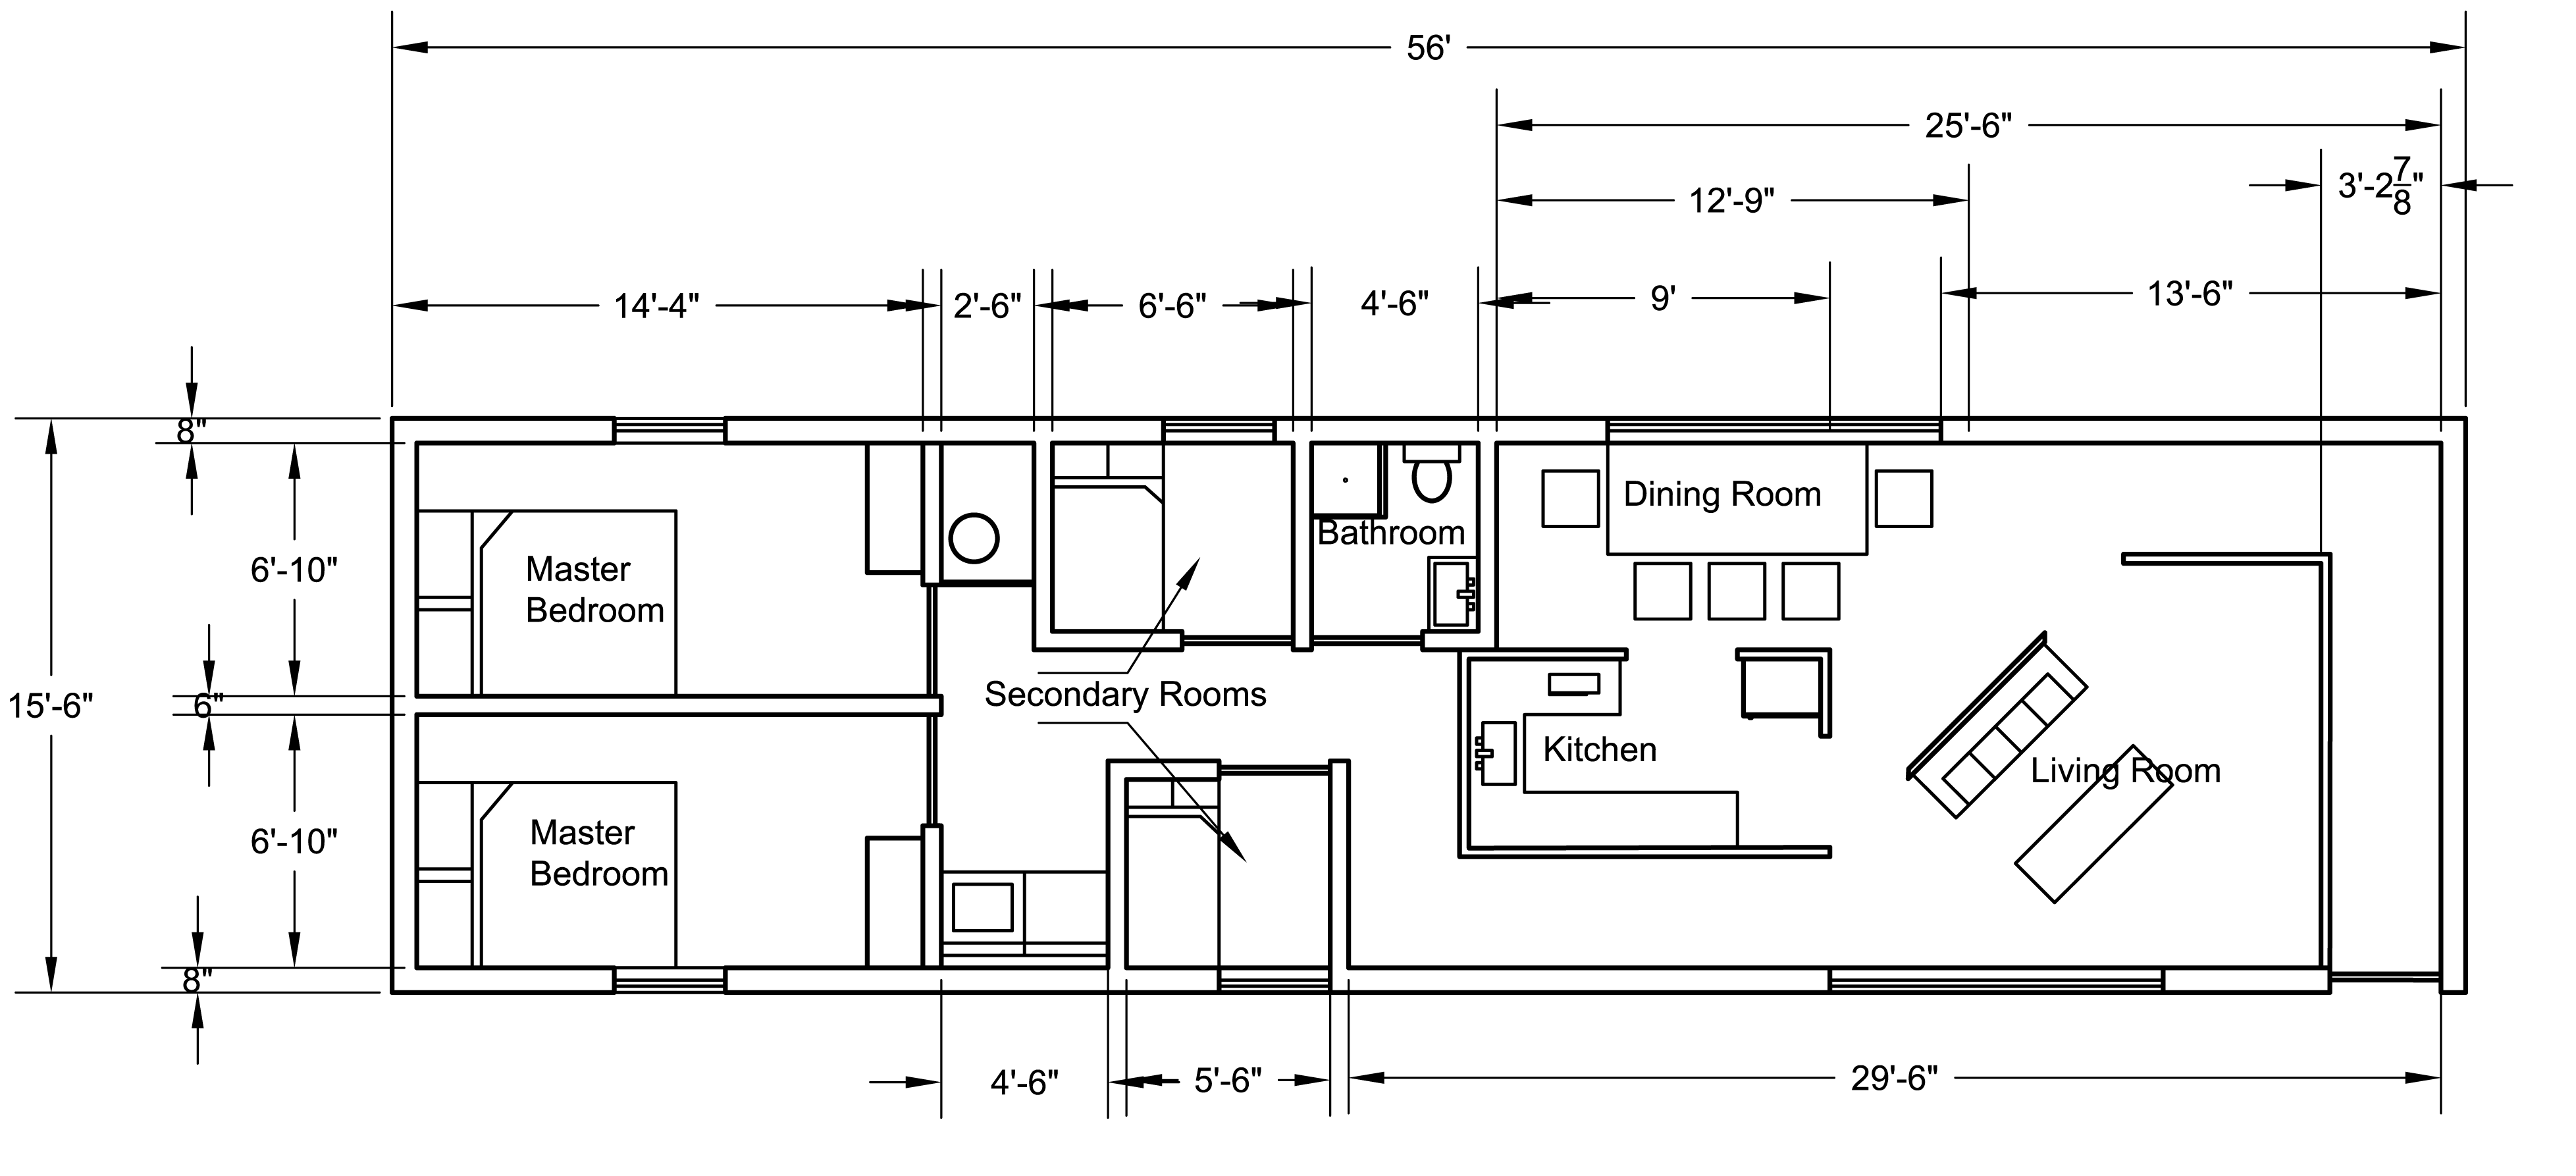 Mobile Home Floor Plan By Cloudy789 Mobile Home Floor Plan By Cloudy789 5  Bedroom Modular.